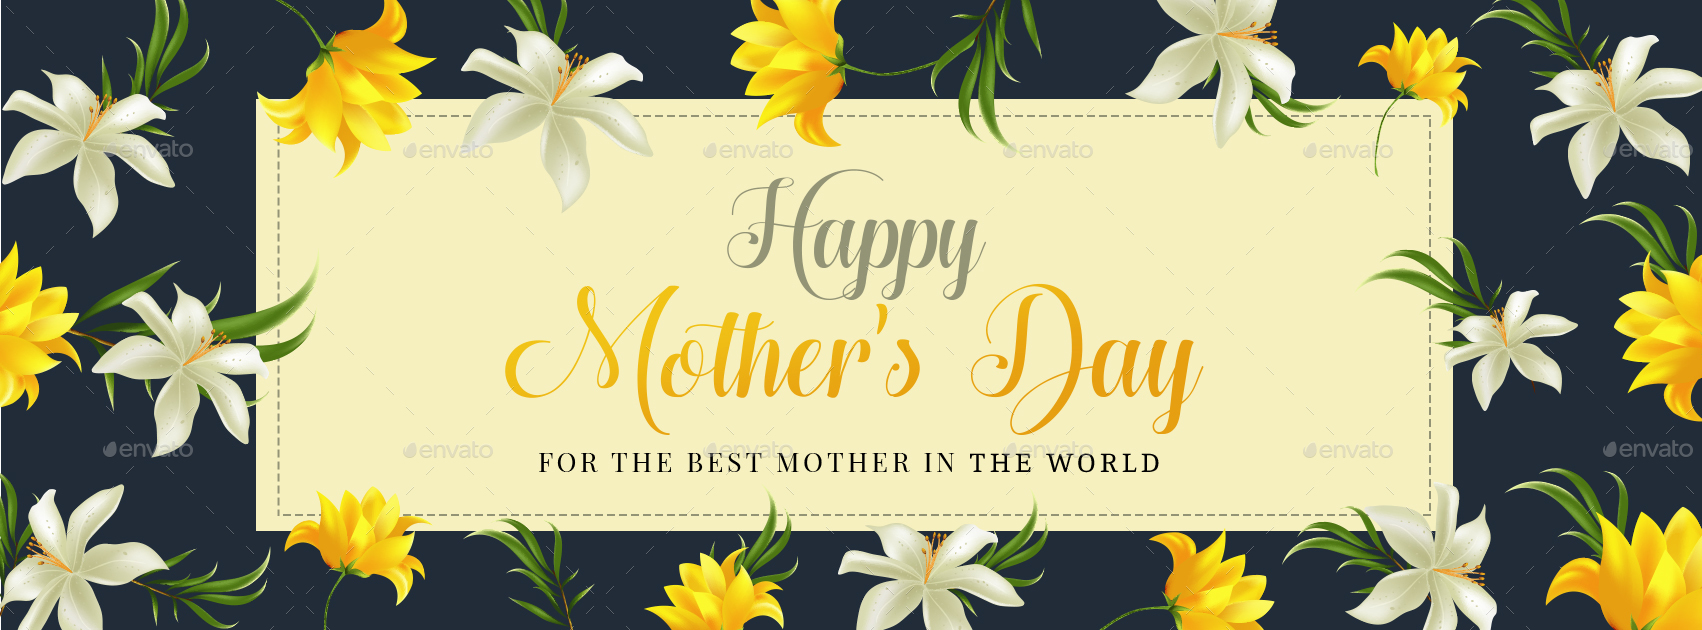 Mother S Day Facebook Cover Templates 5 Designs